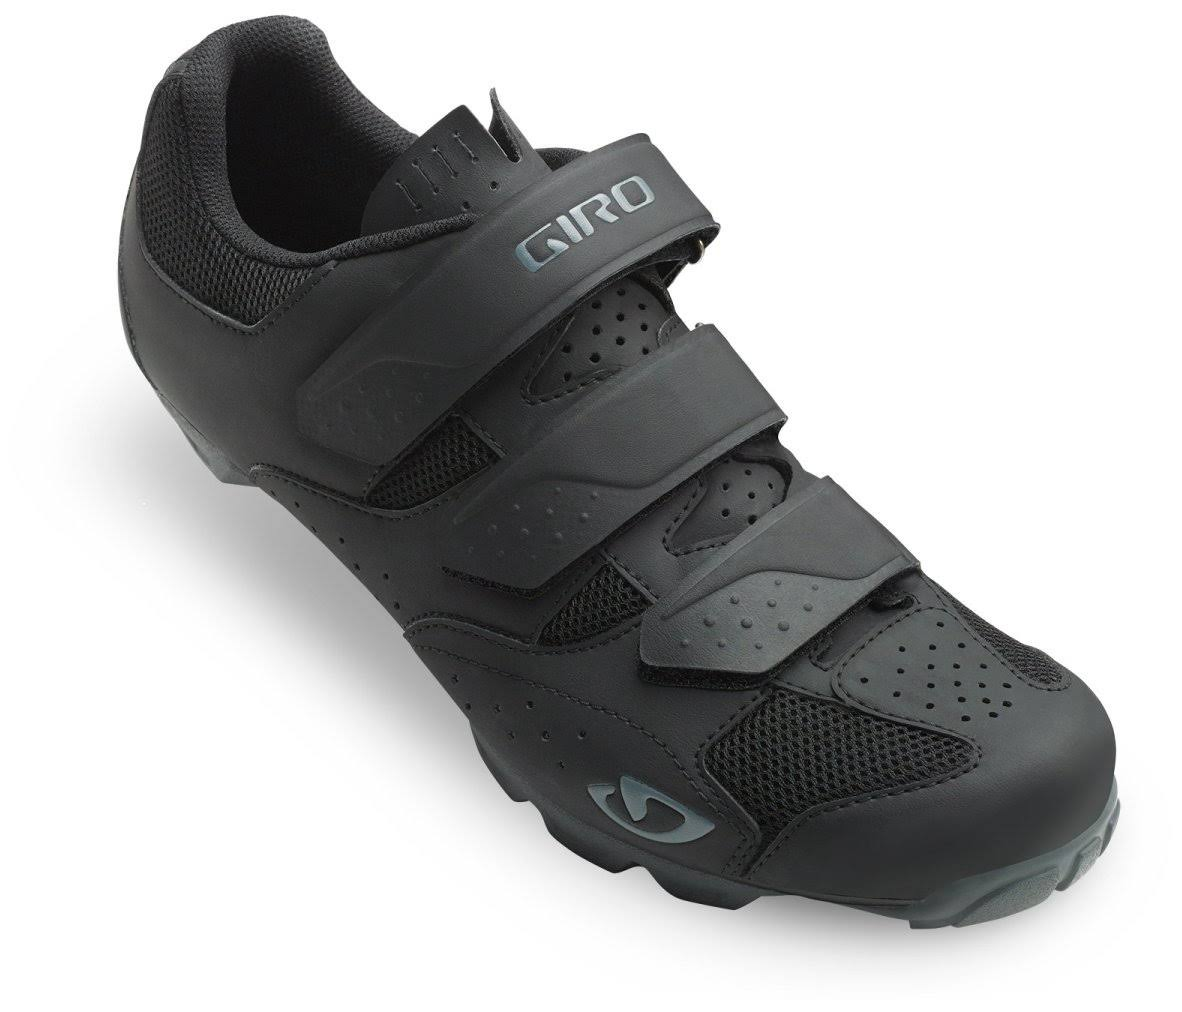 Carbide Mens R II Mountain Bike Shoes - Black Charcoal, 46 EU